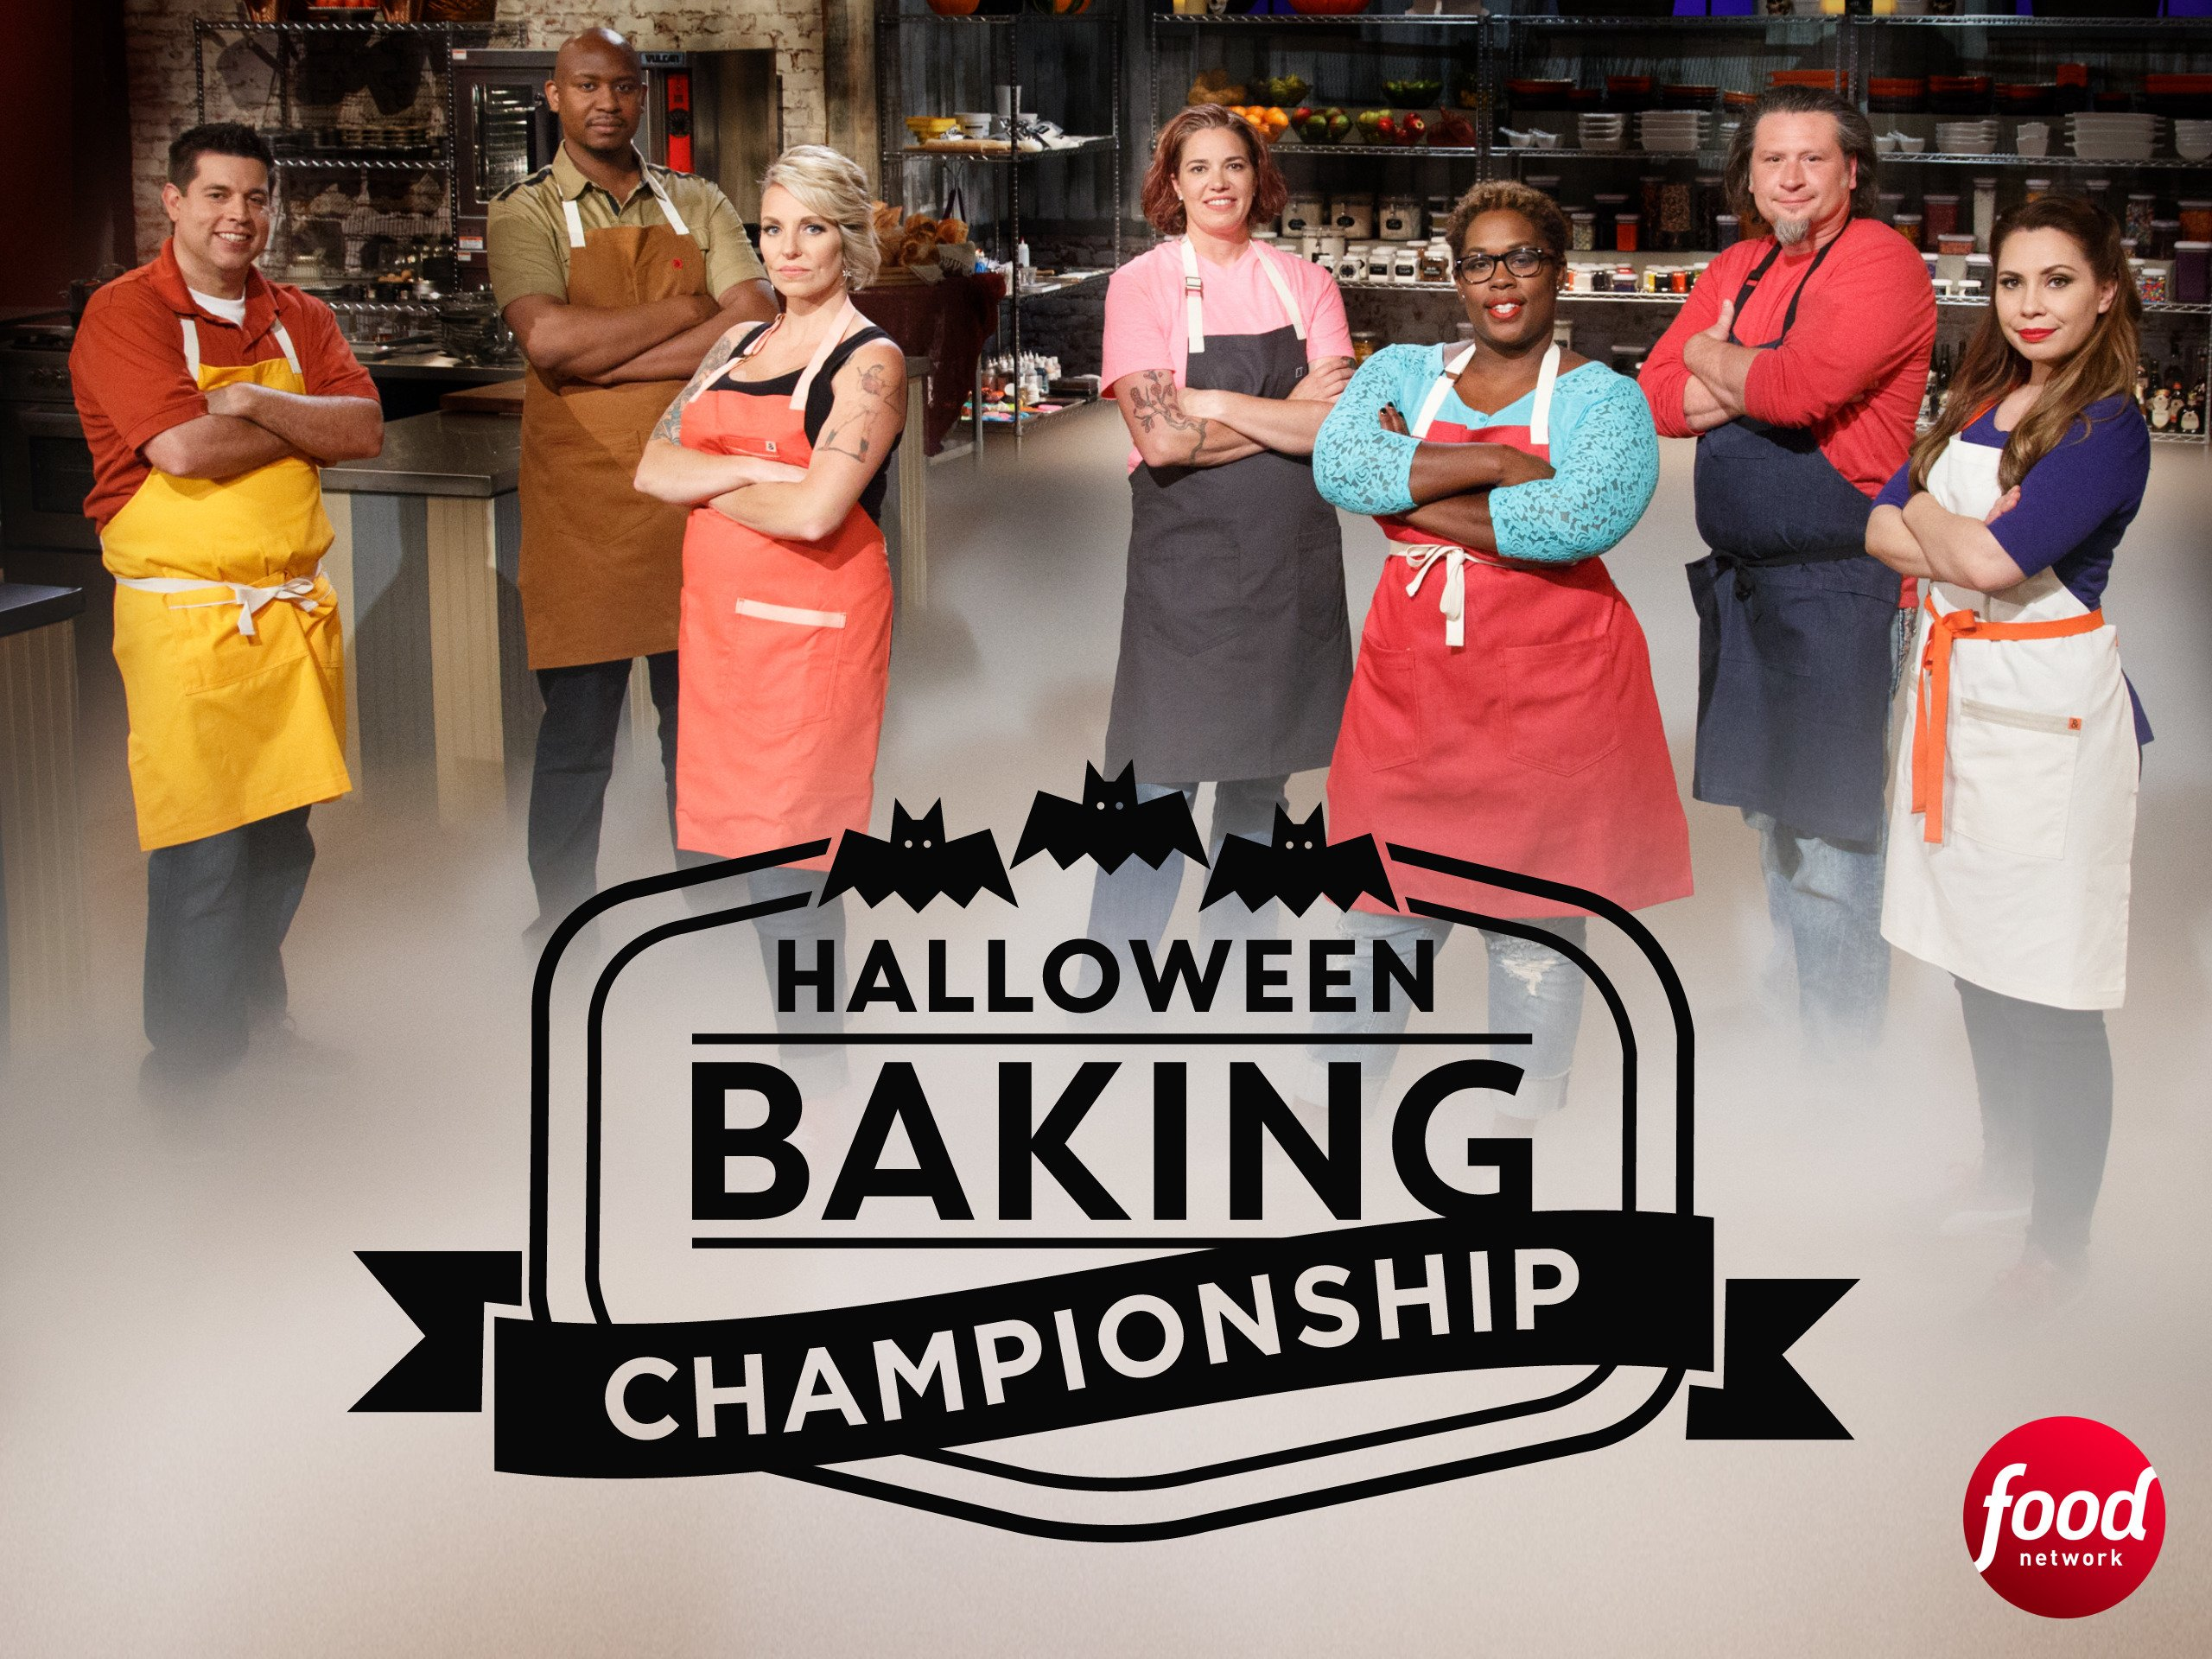 Halloween Baking Championship 2020 Free Episodes Streaming Watch Halloween Baking Championship, Season 2 | Prime Video